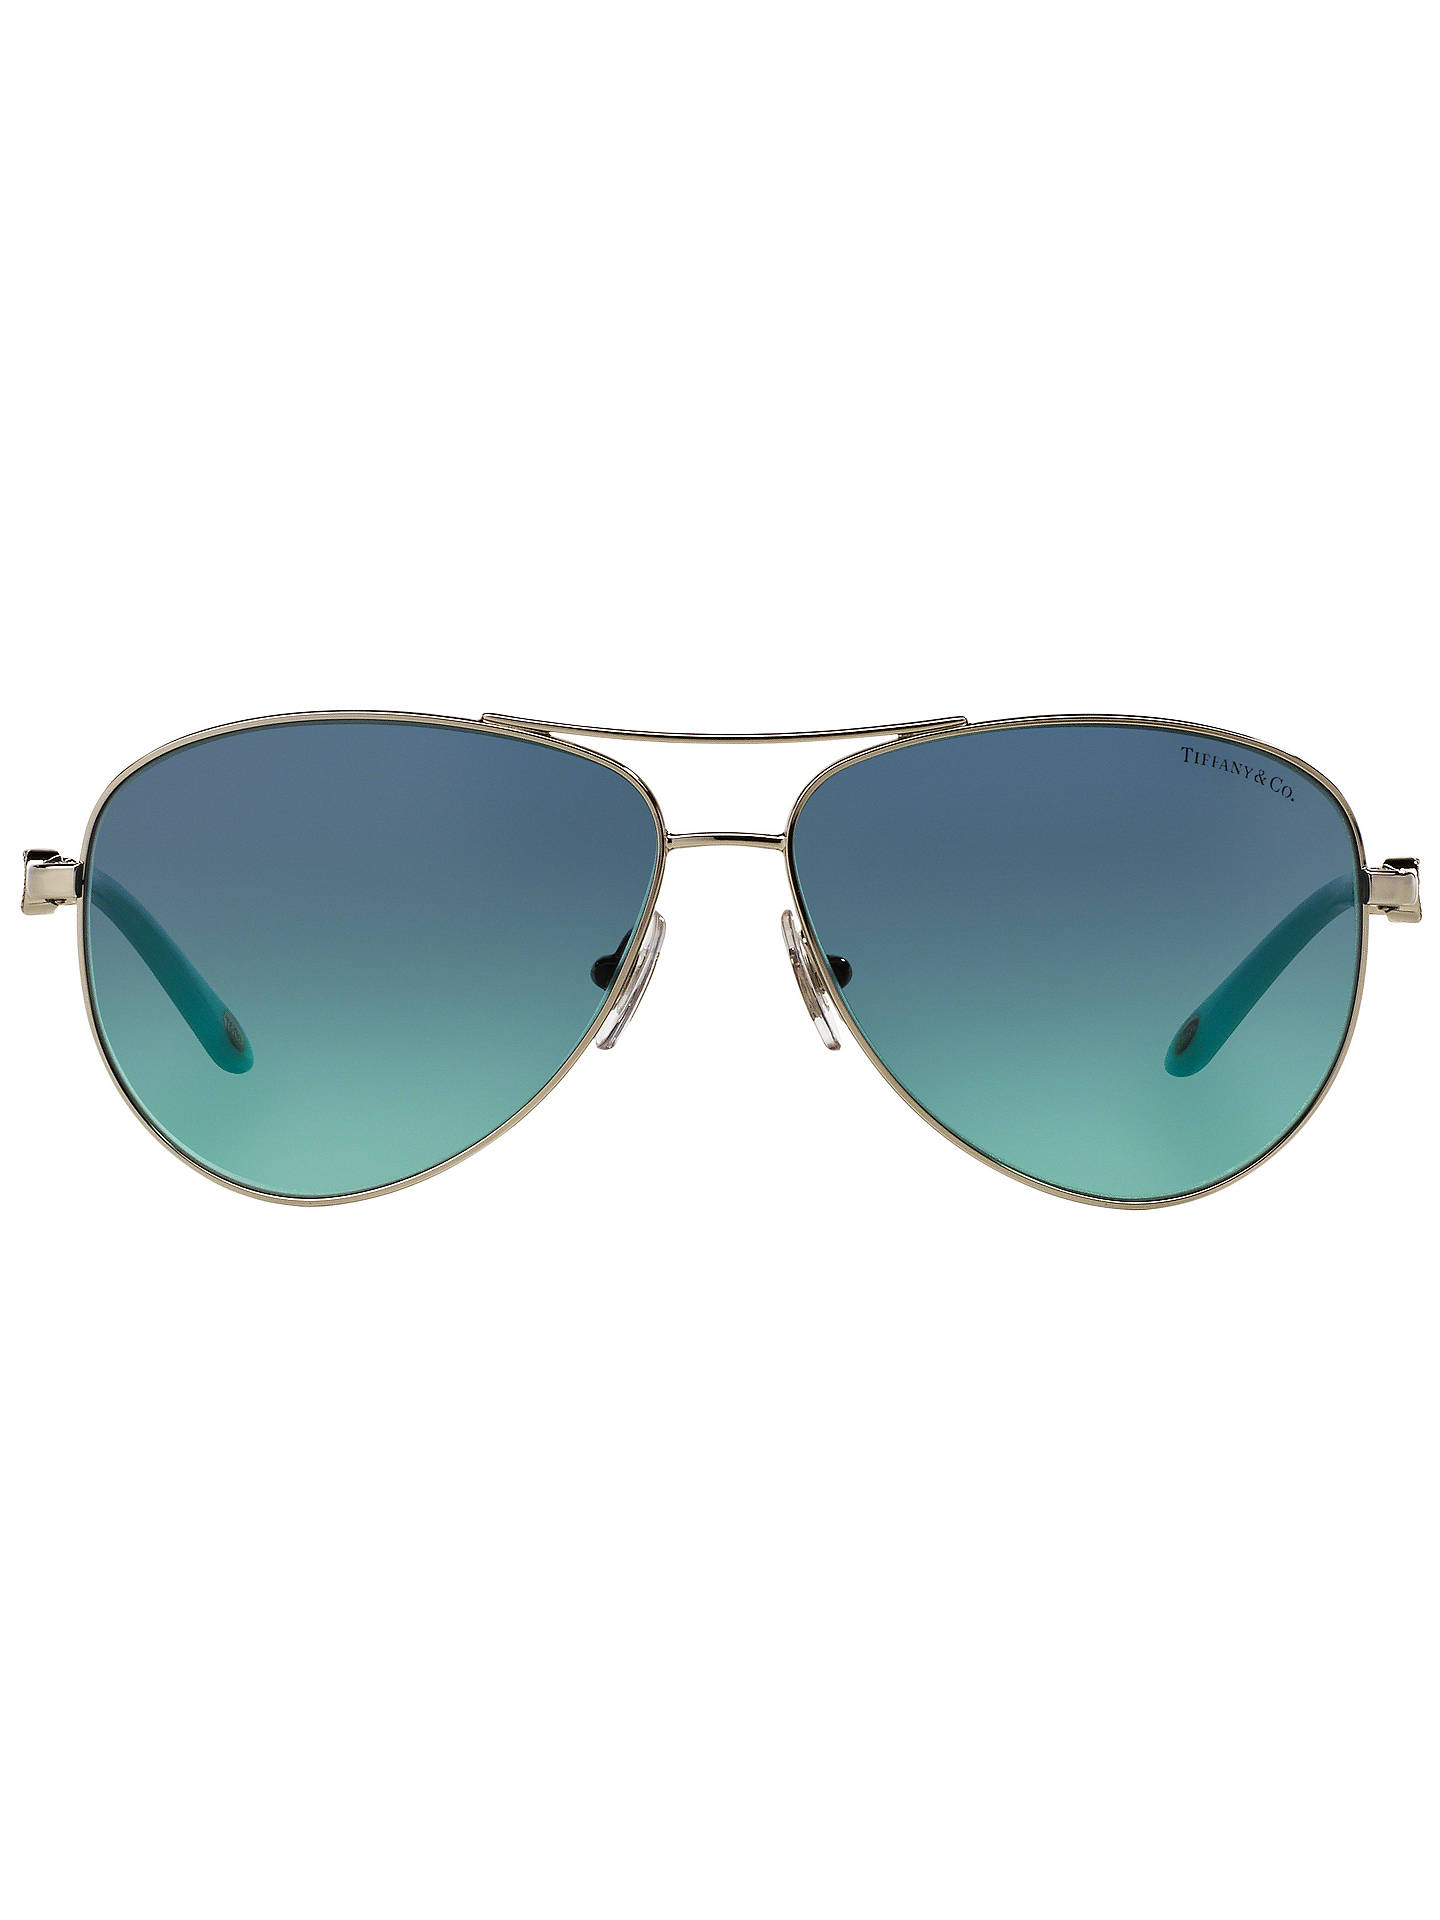 d9bf12307f1 ... Buy Tiffany   Co TF3049B Aviator Sunglasses